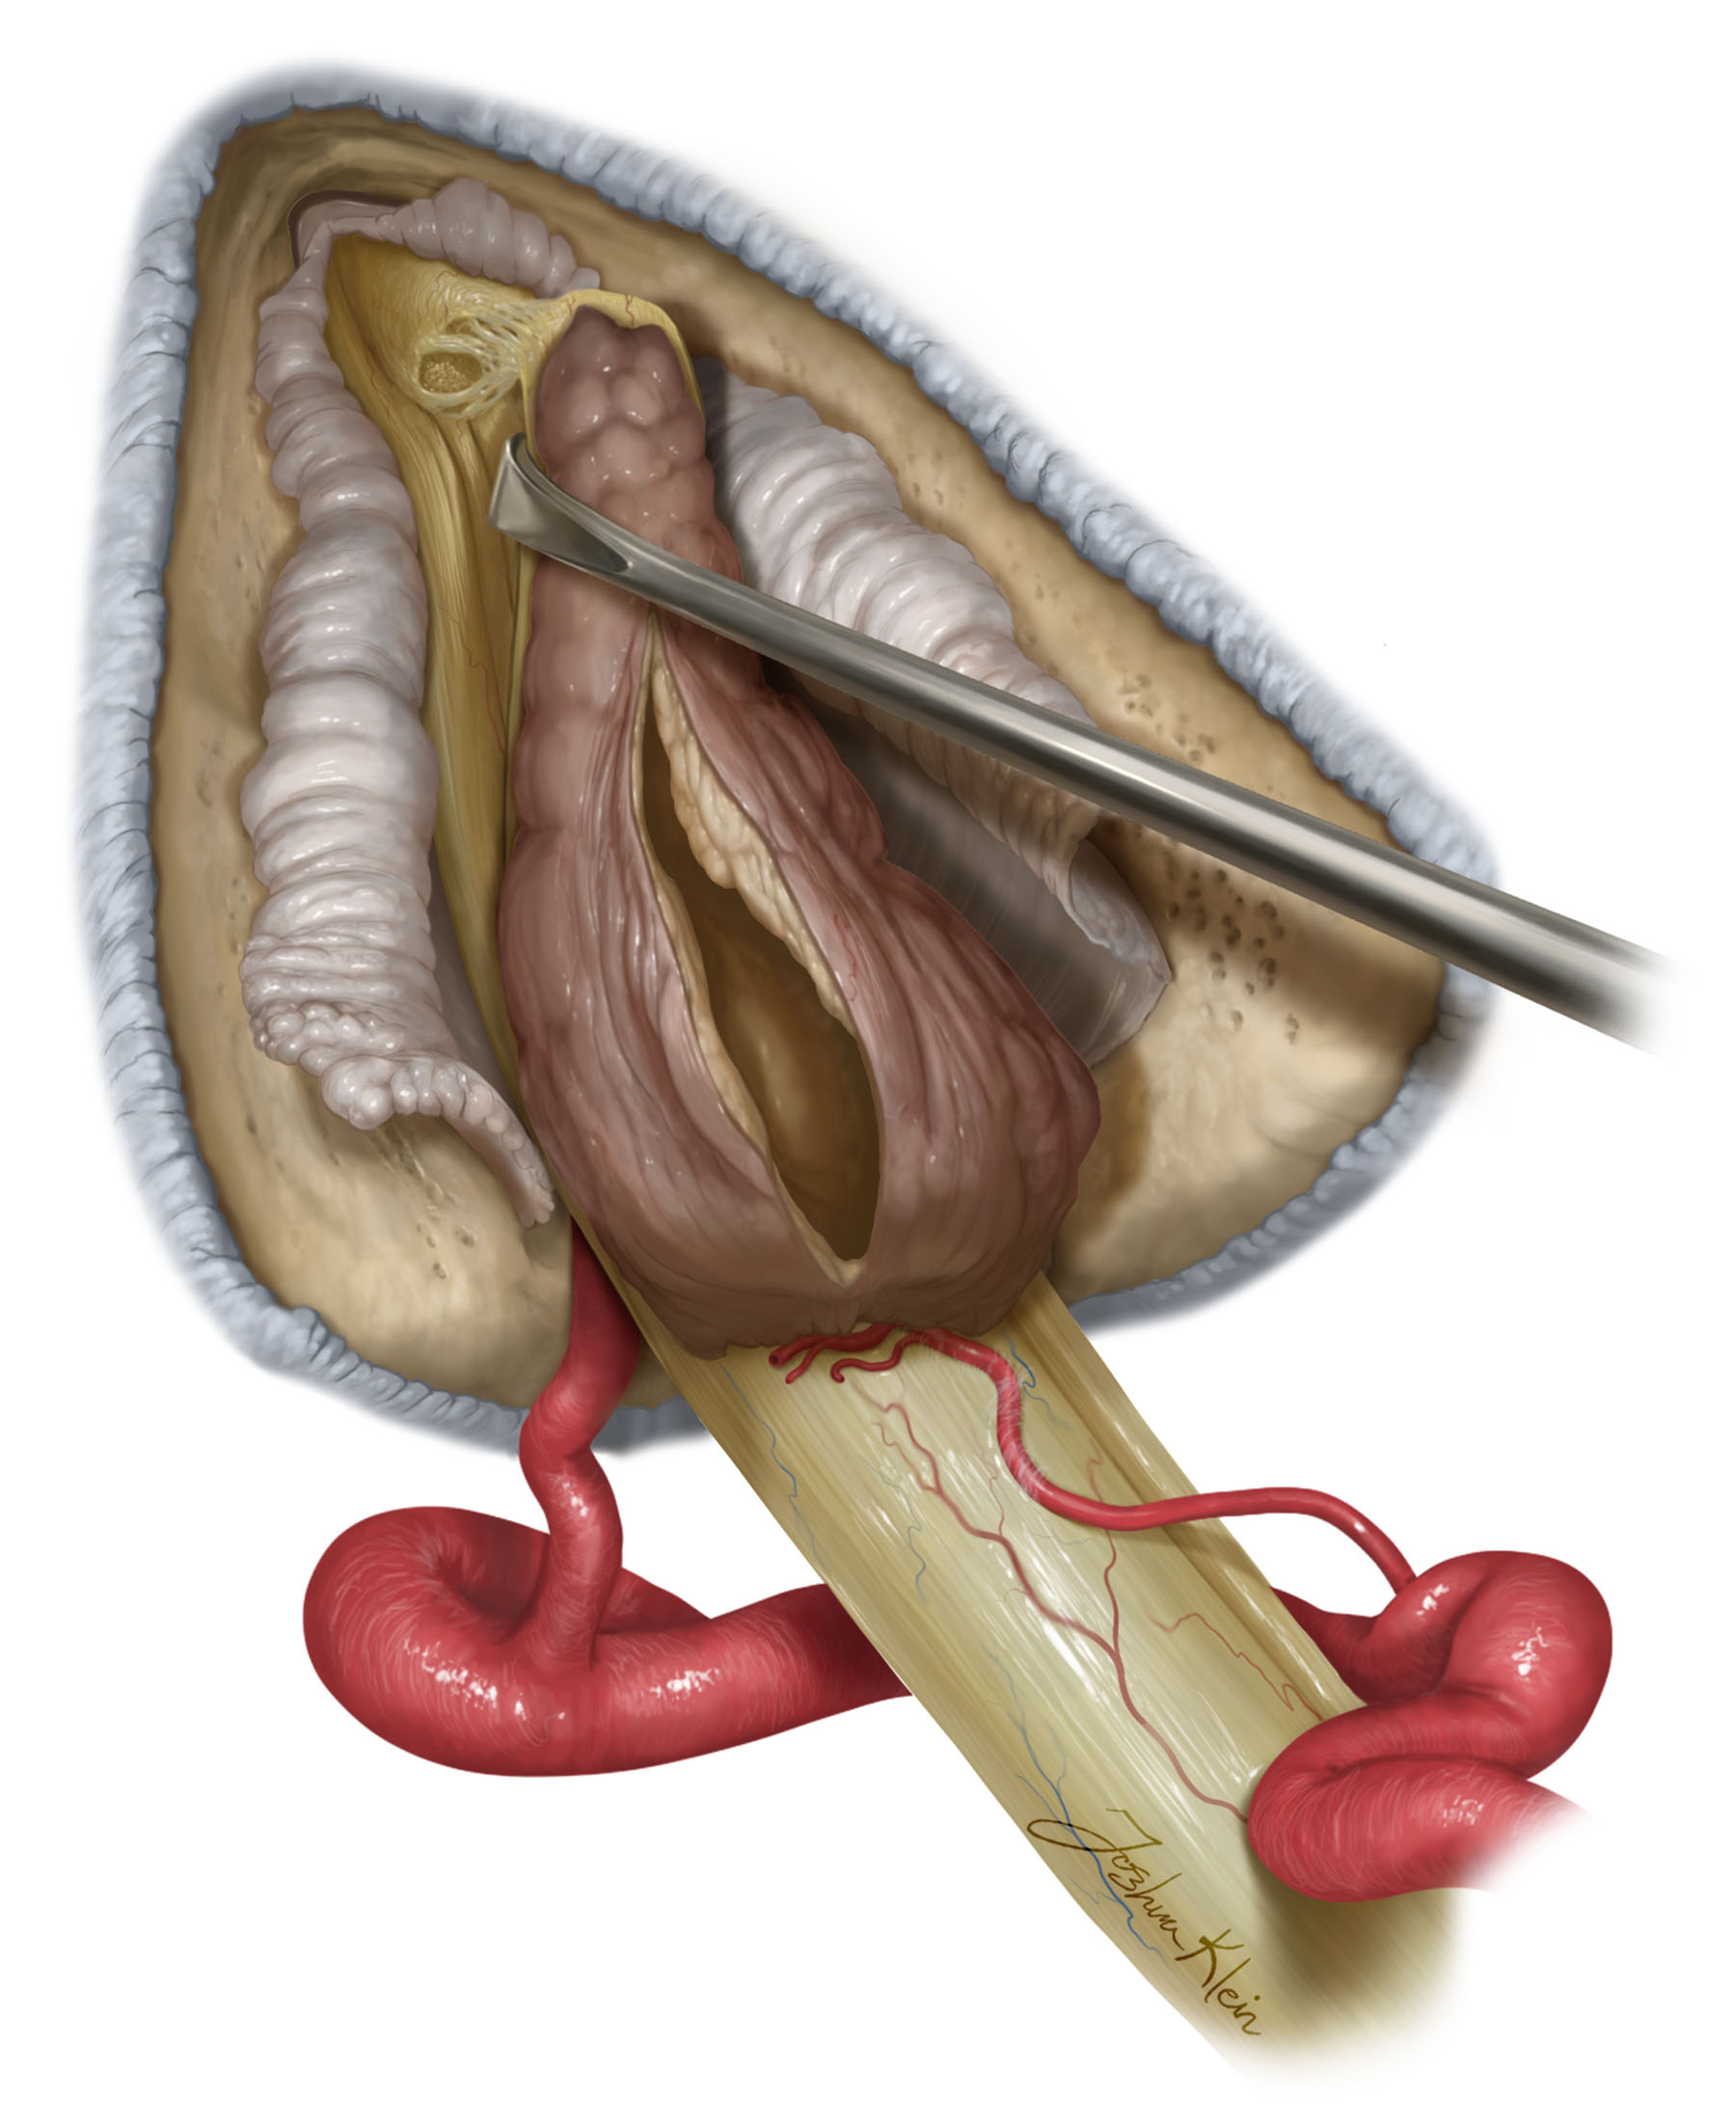 Figure 8:The superior vestibular nerve from which the tumor typically arises is sectioned/avulsed lateral to the tumor to ensure that residual tumor is not left behind.